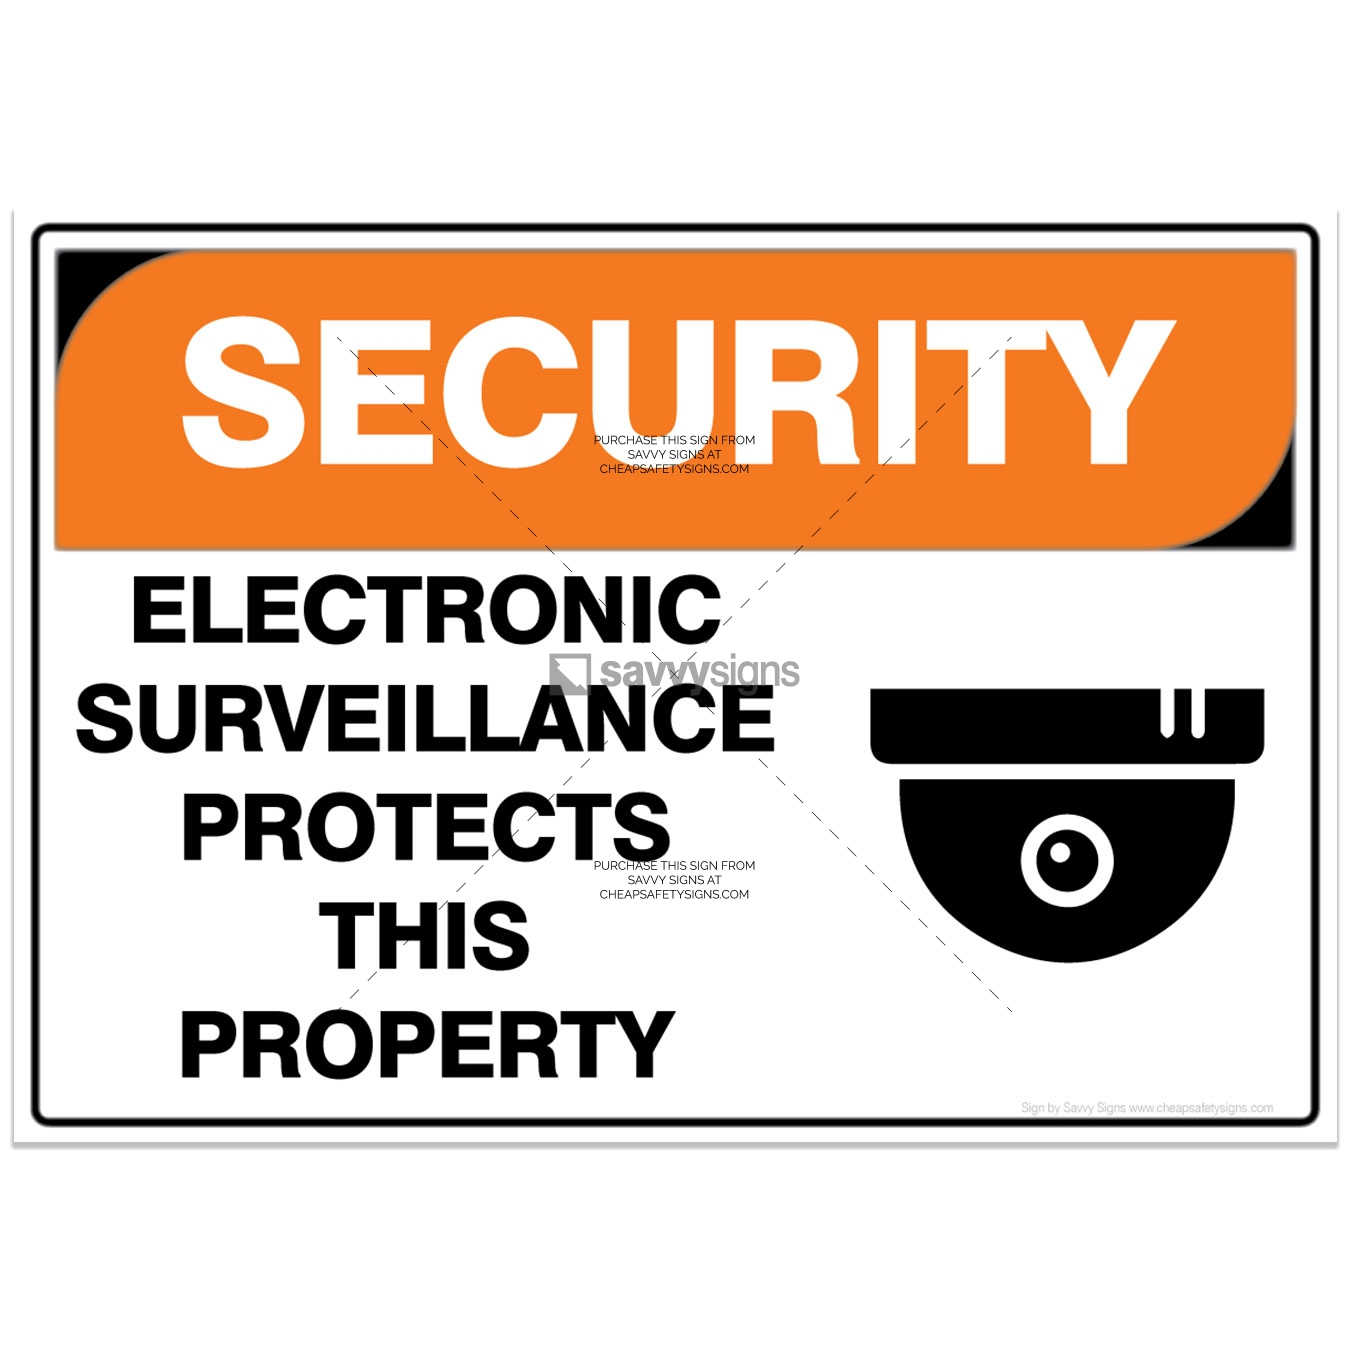 SSSEC3009-SECURITY-Workplace-Safety-Signs_Savvy-Signs_v3